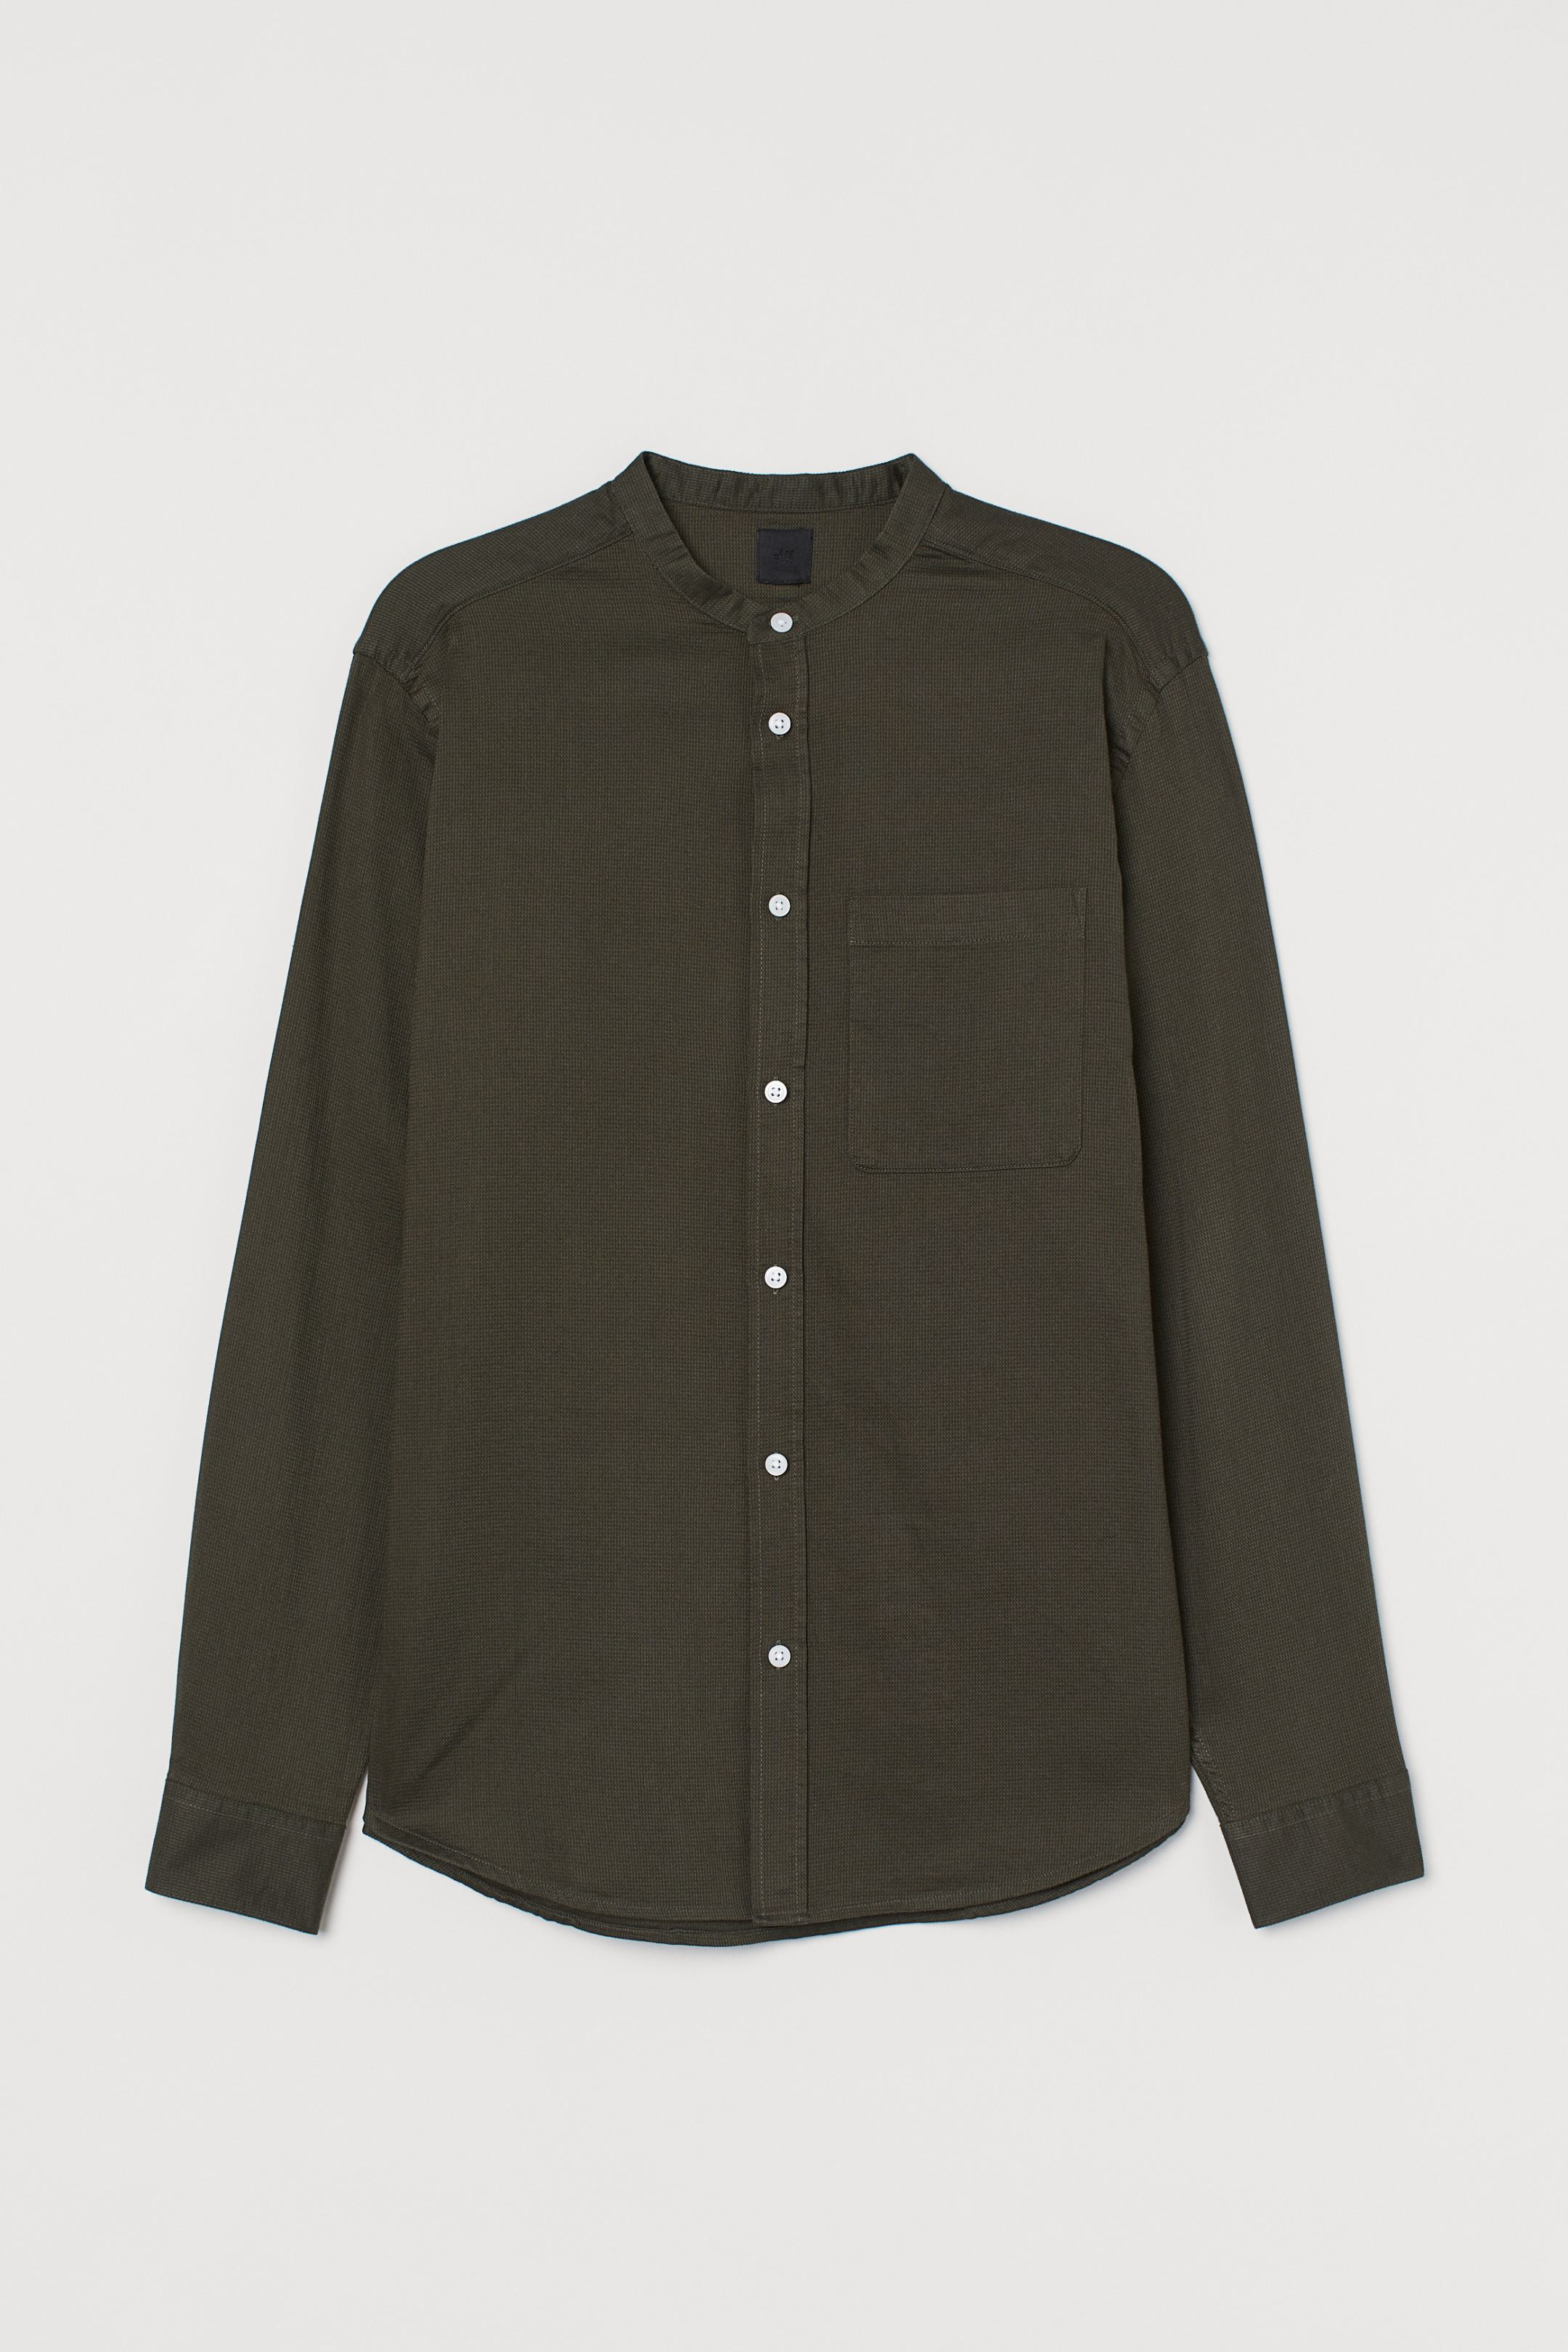 H&M Regular Fit Collarless Shirt